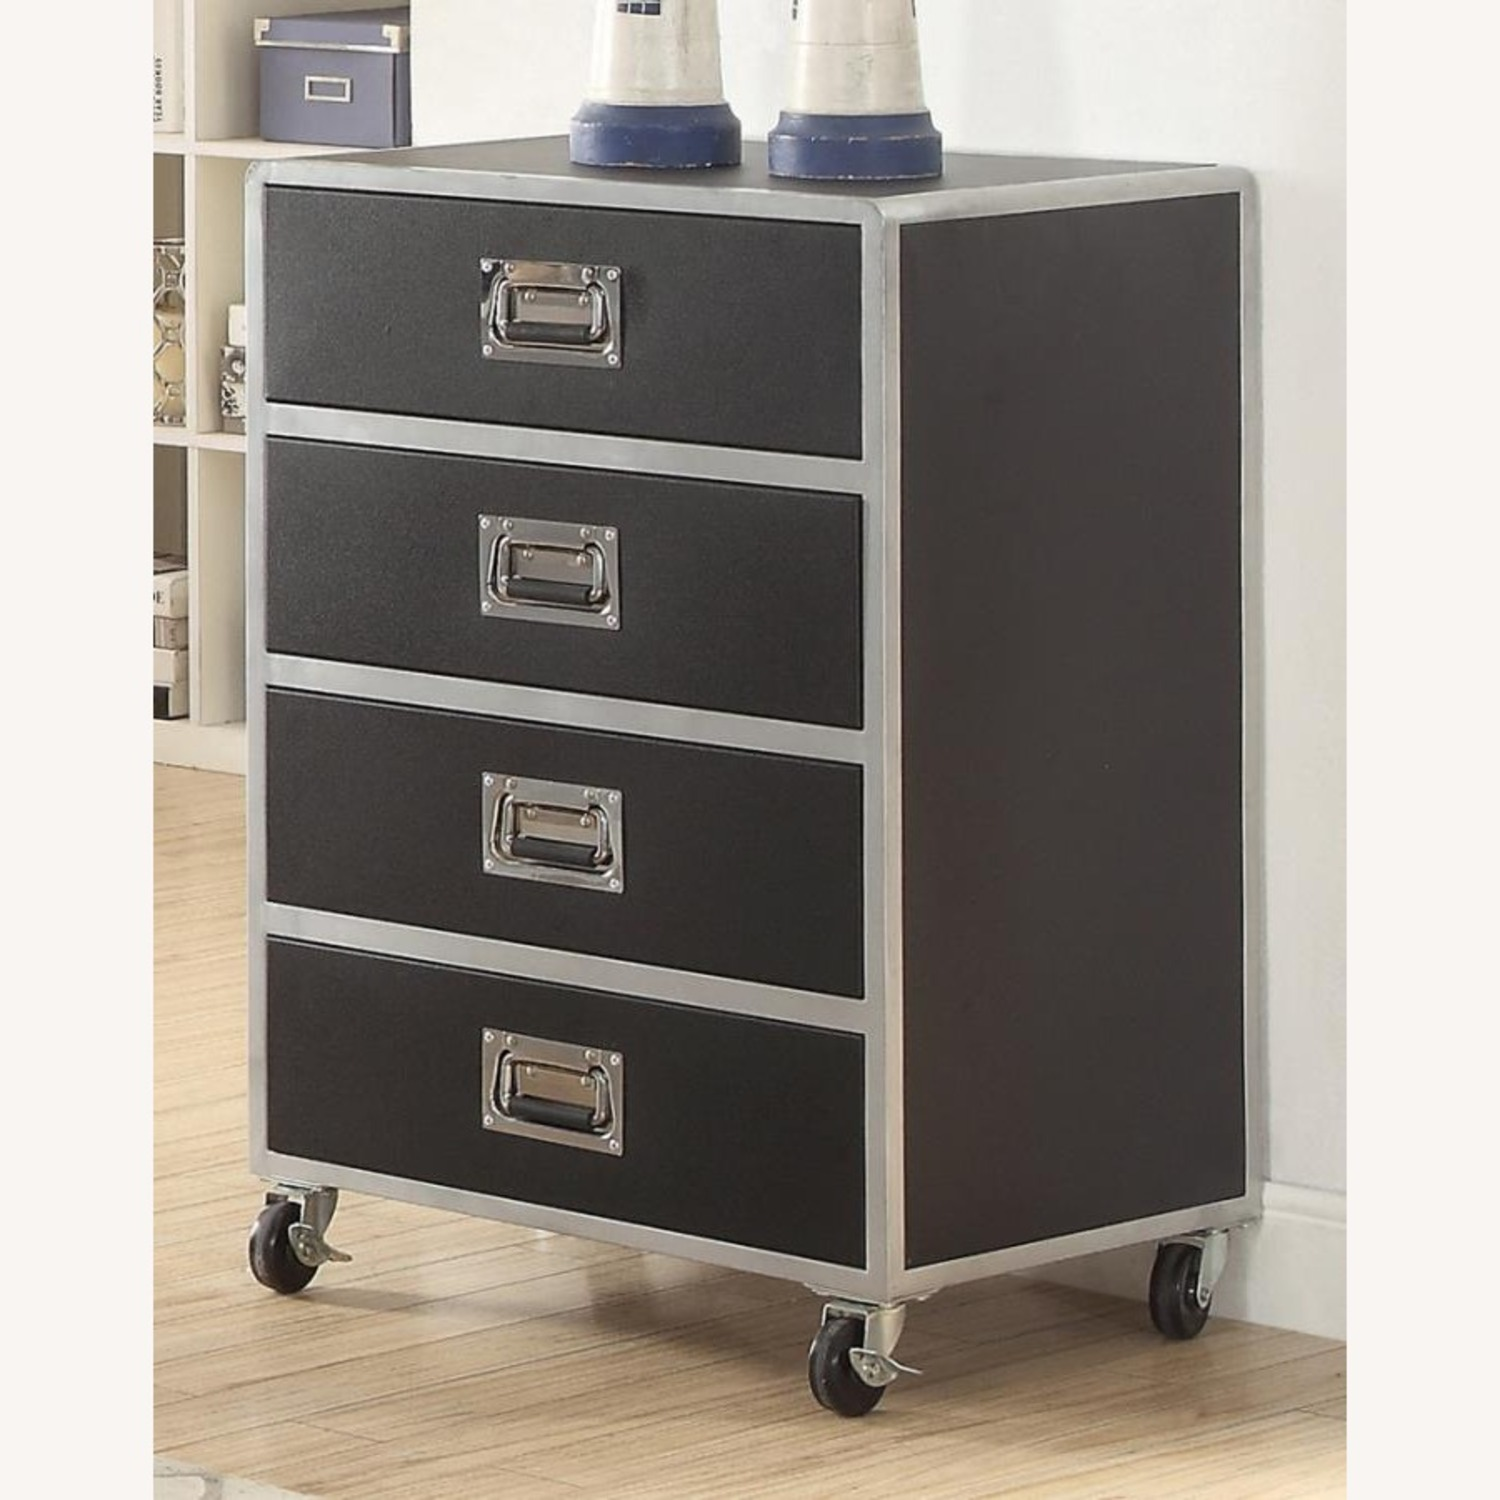 Chest In Black & Silver Finish W/ Lockable Casters - image-3